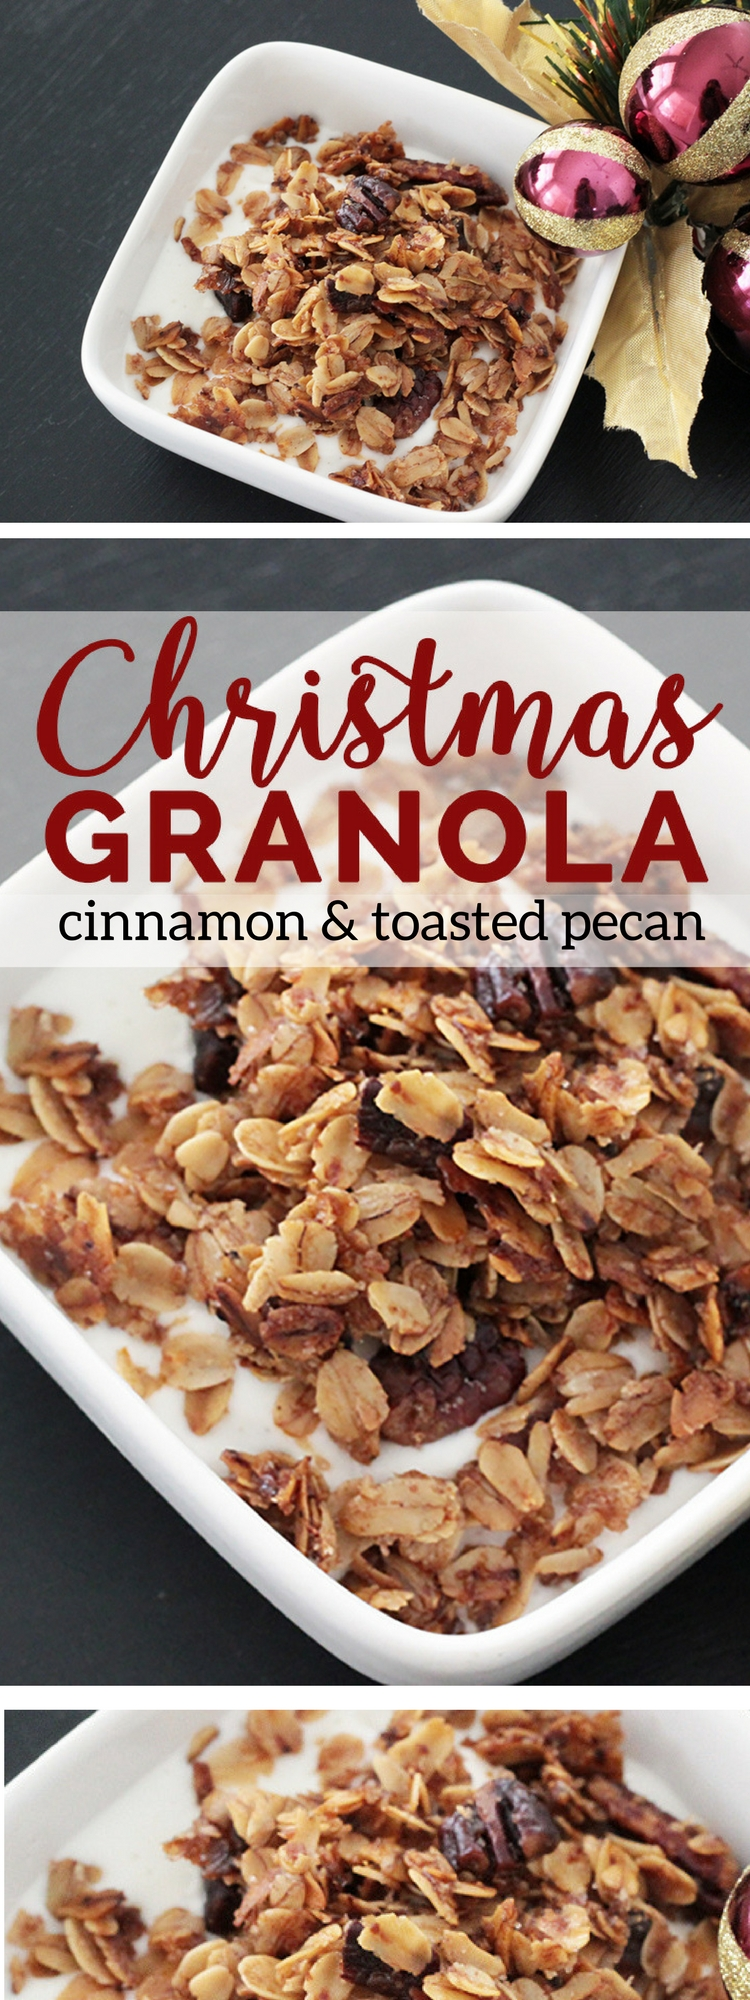 Christmas granola recipe. Cinnamon and toasted pecan granola recipe. How to make your own granola.